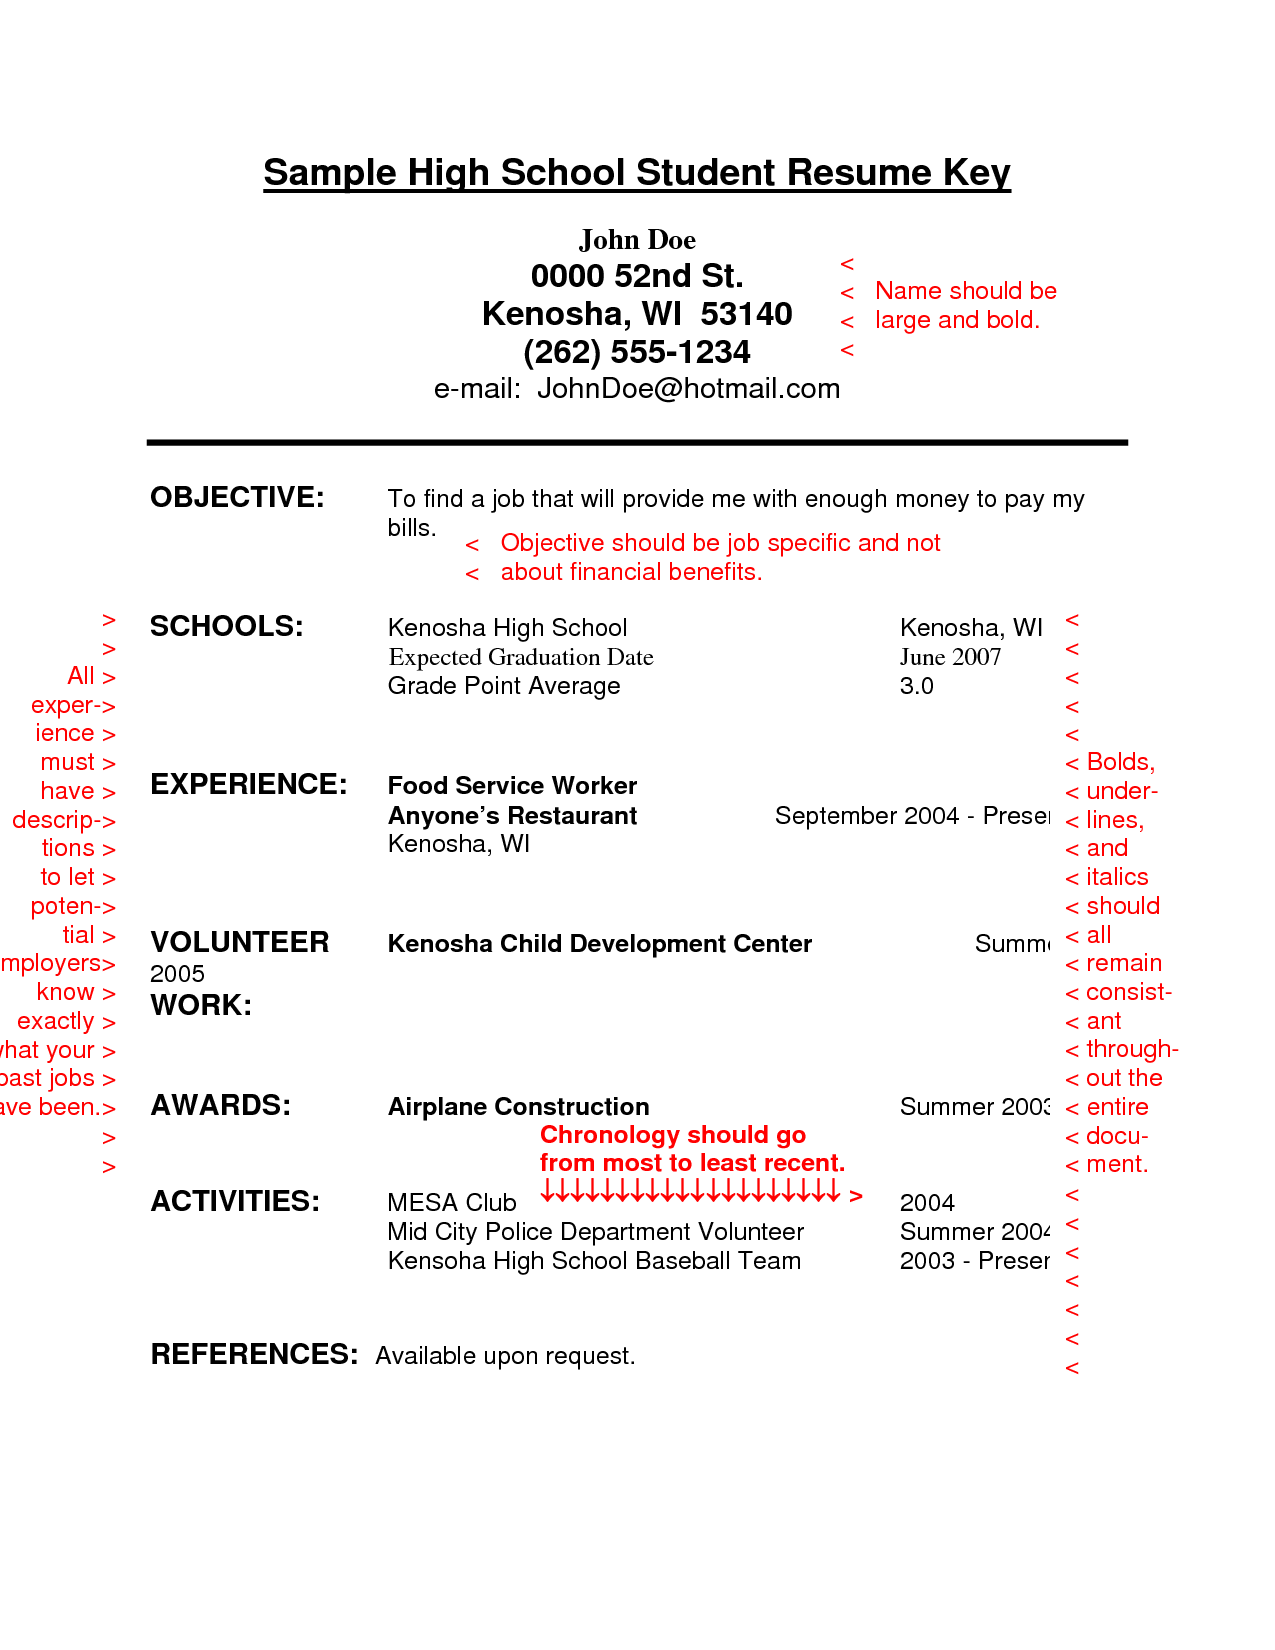 Resume Sample For High School Students With No Experience   Http://www.  Sample Resumes For Students